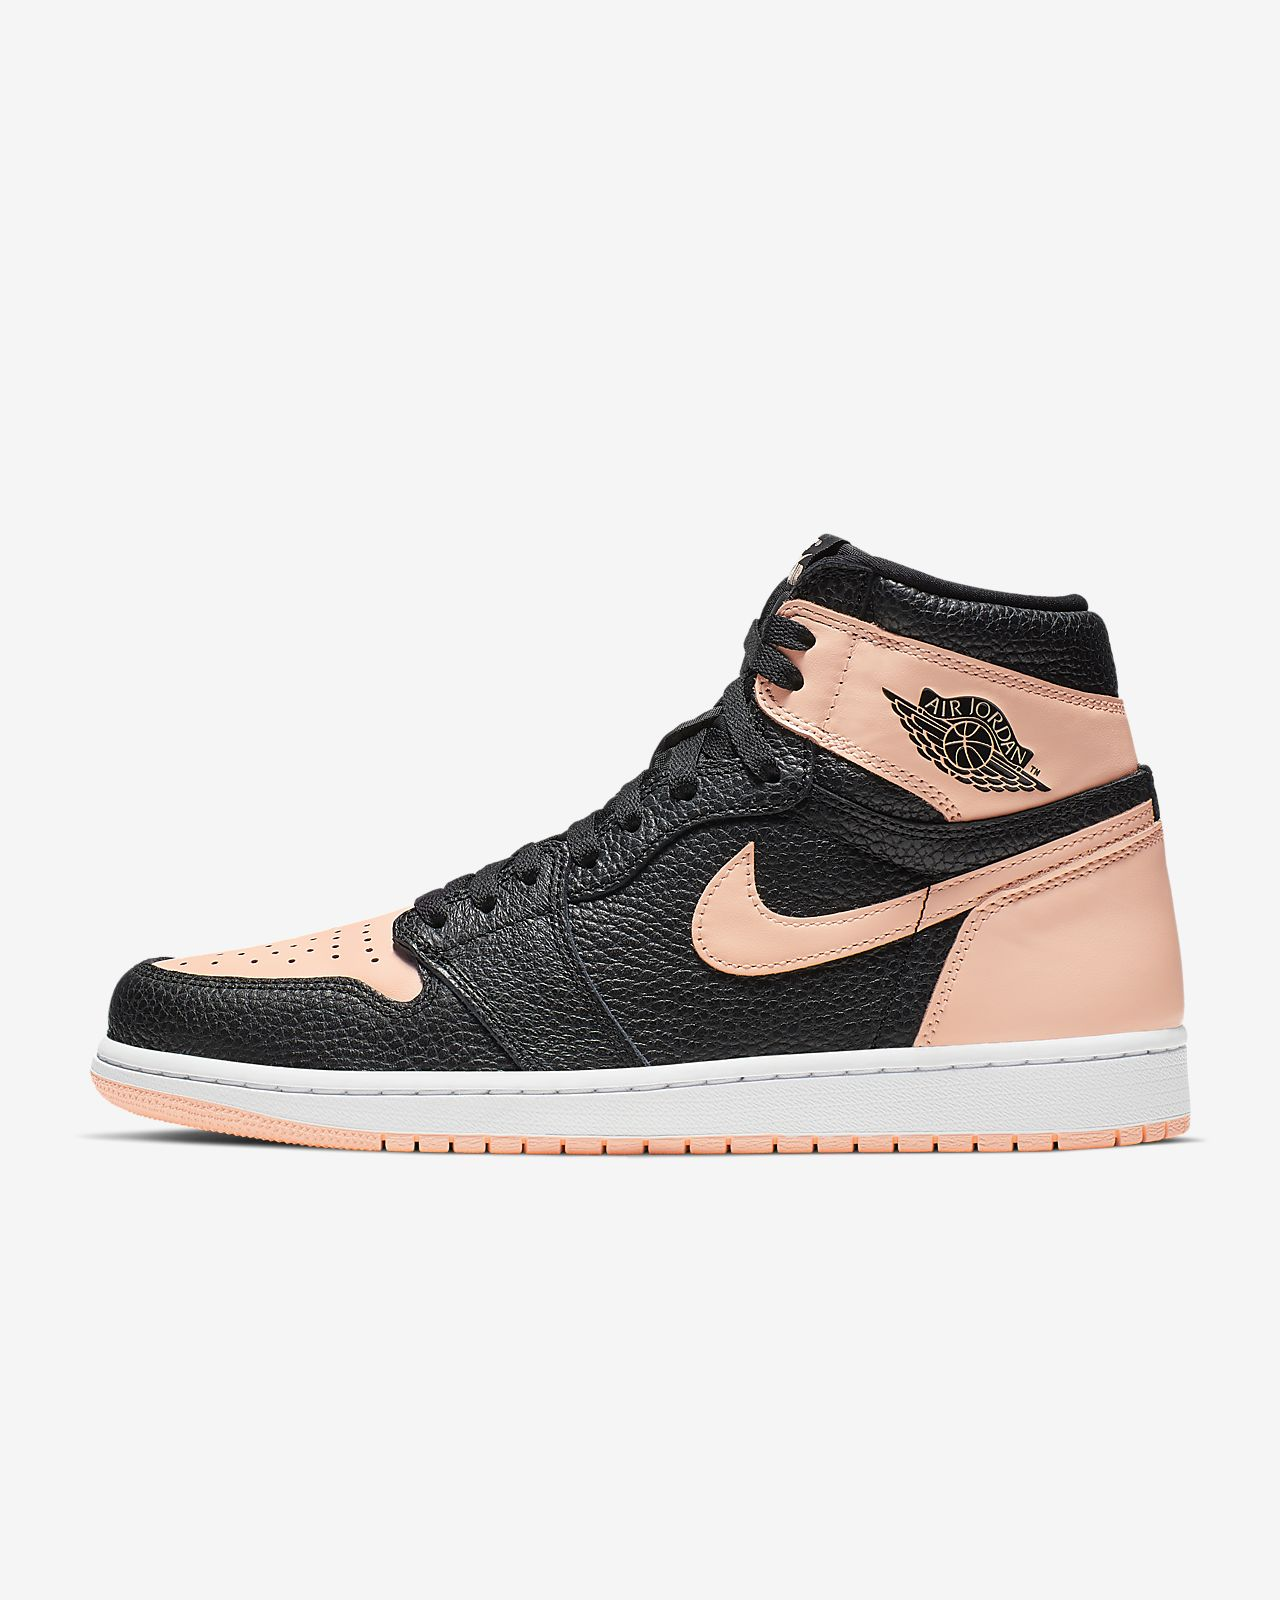 749b99e641e Air Jordan 1 Retro High OG Shoe. Nike.com